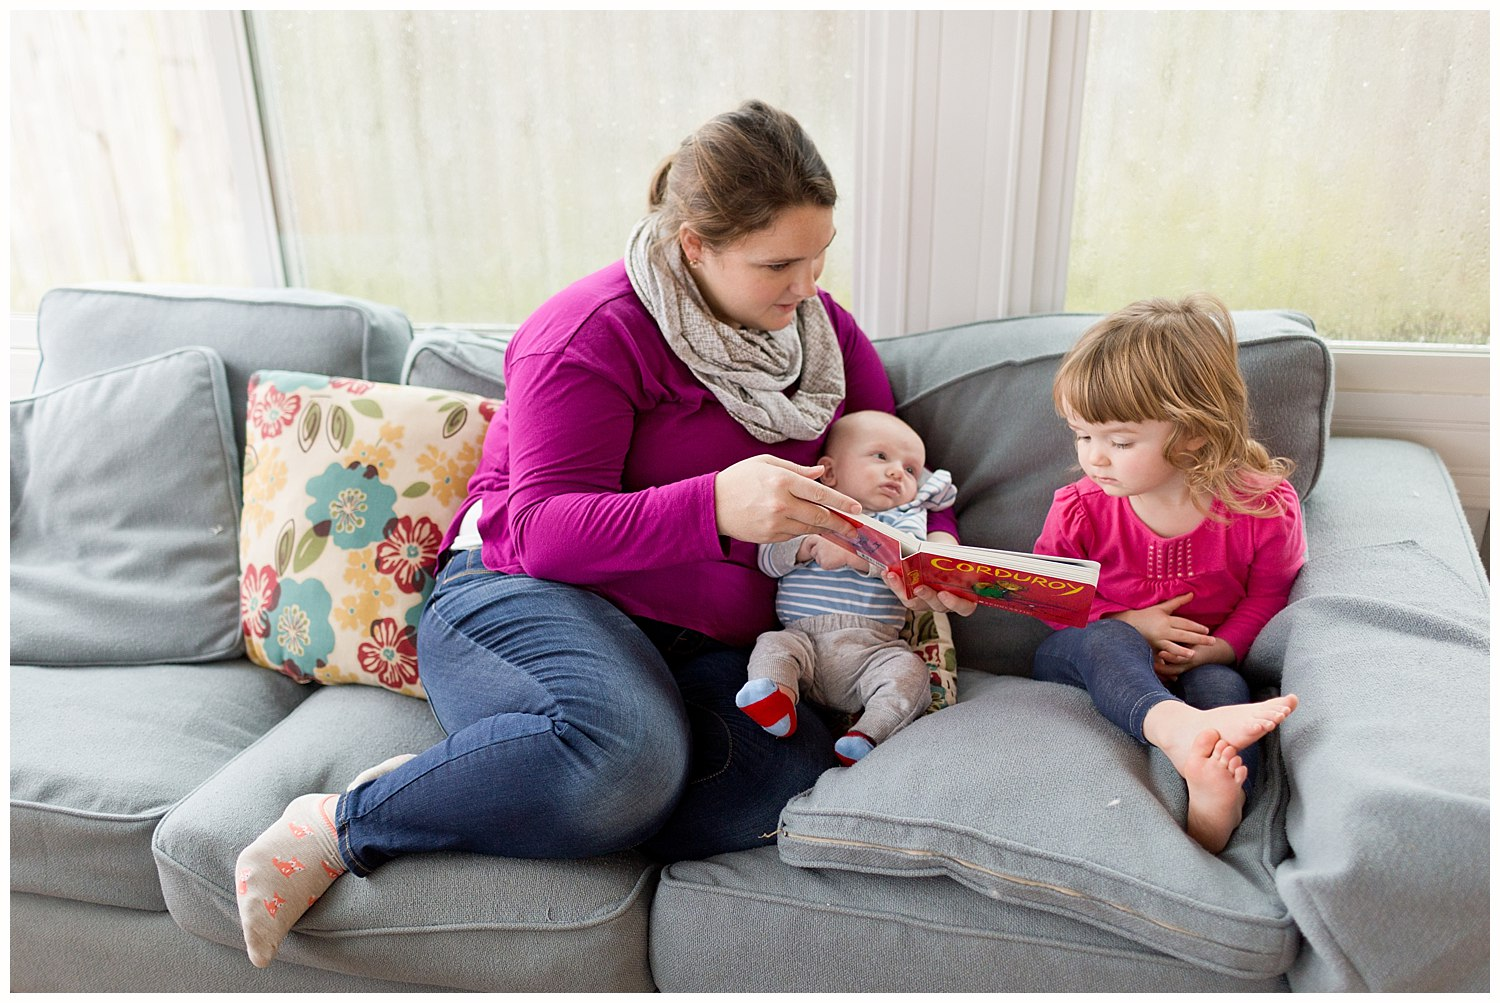 mom reading Corduroy book to baby boy and toddler girl